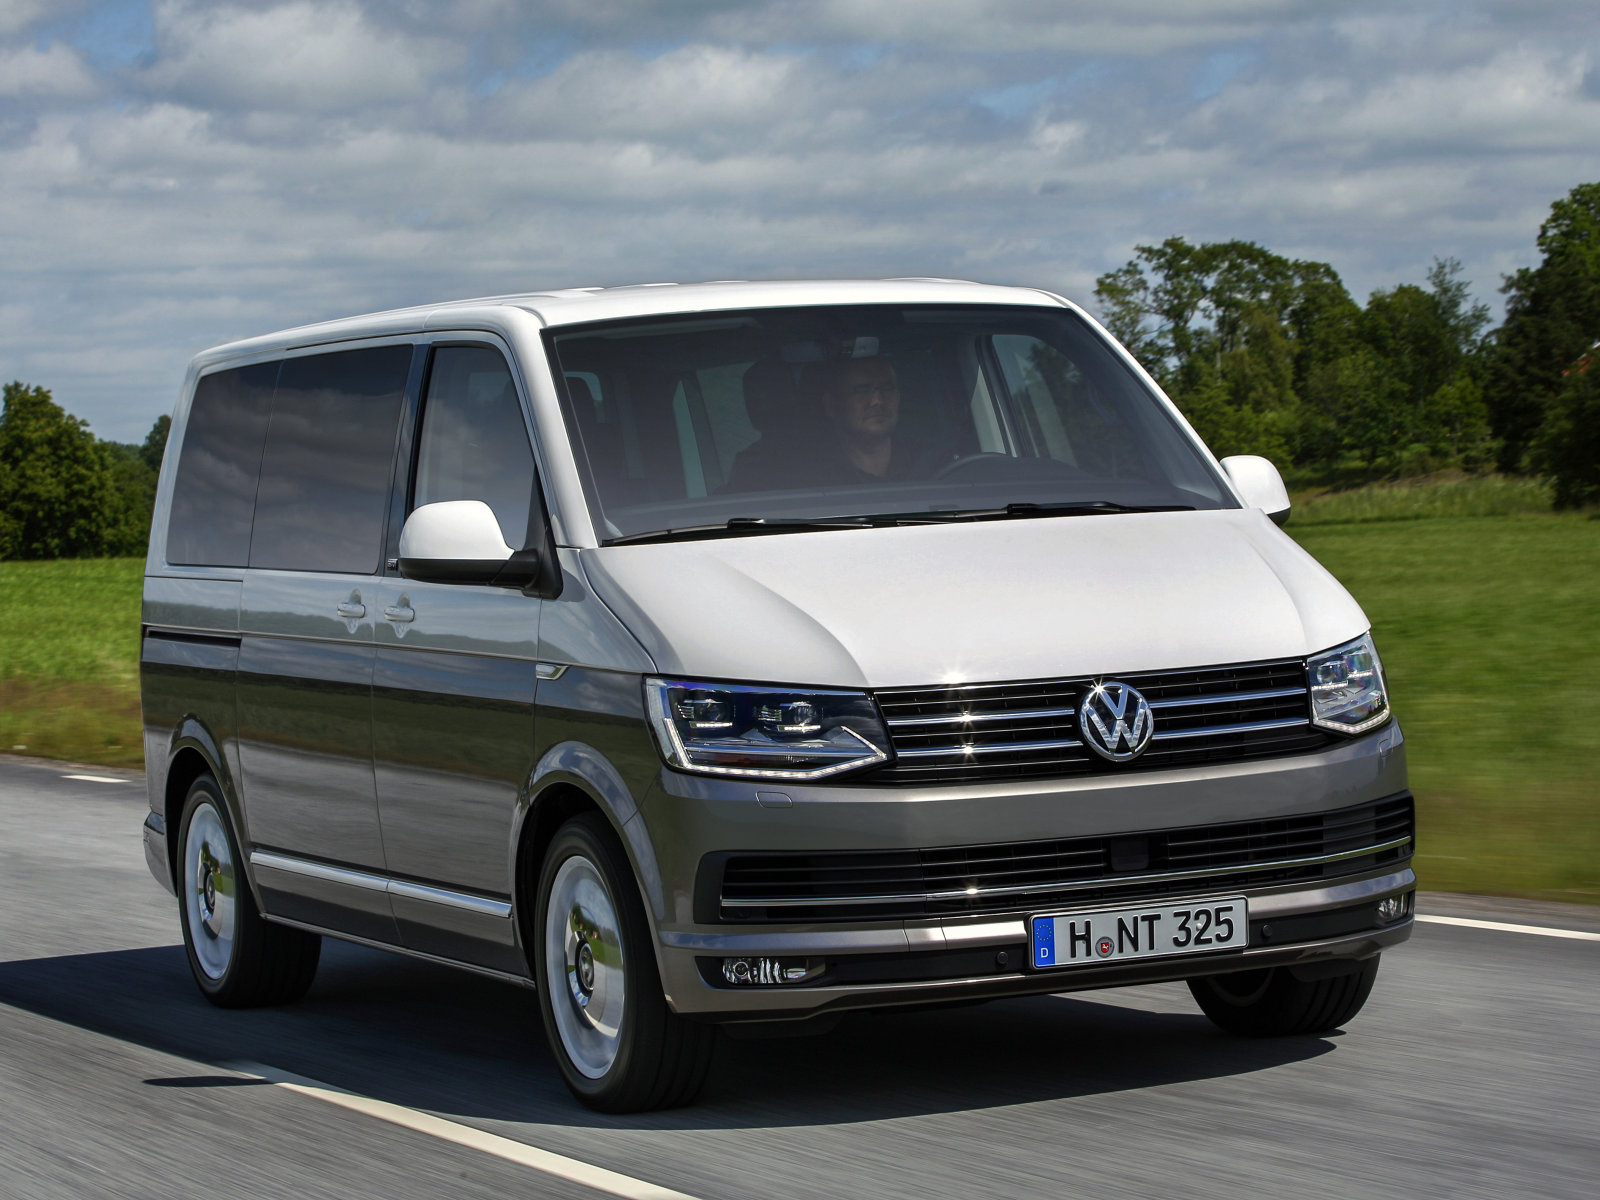 vw transporter ply lining templates for business